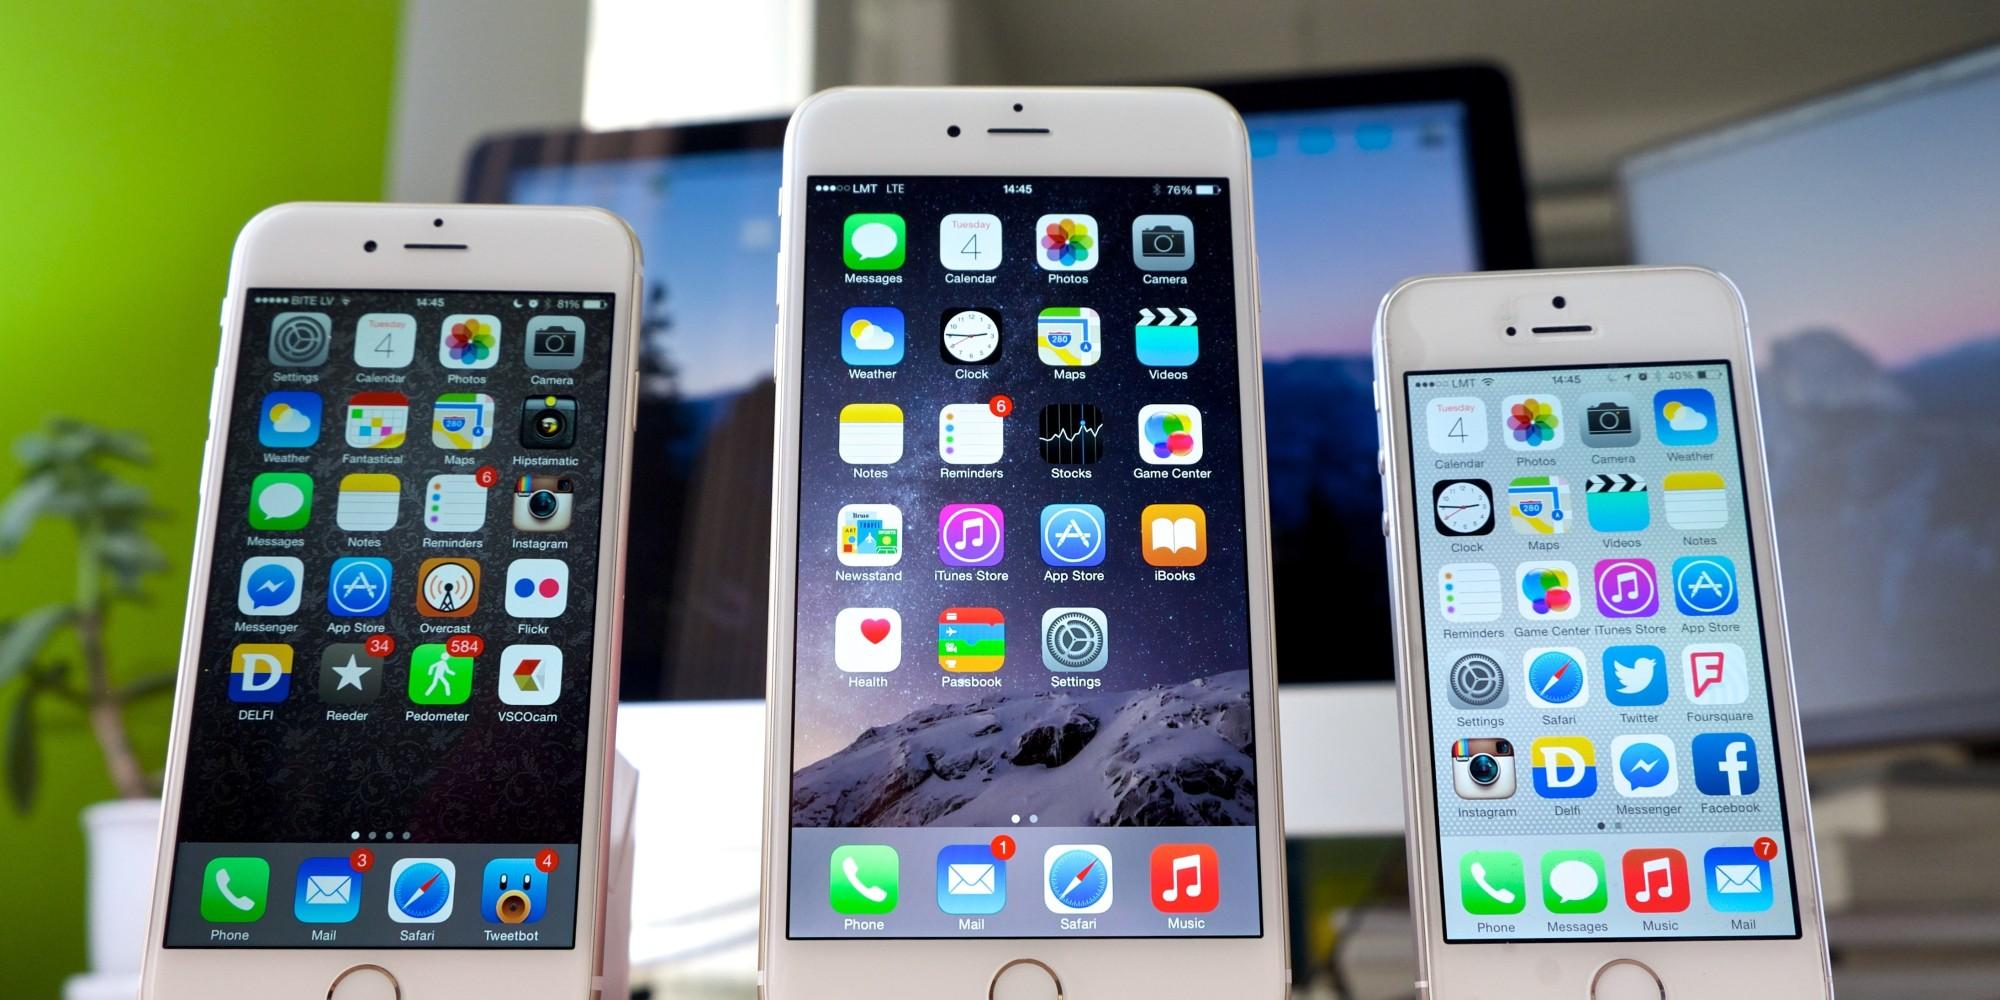 http://www.huffingtonpost.com/2015/01/08/iphone-free-space-tips_n_6269756.html?ir=Technology